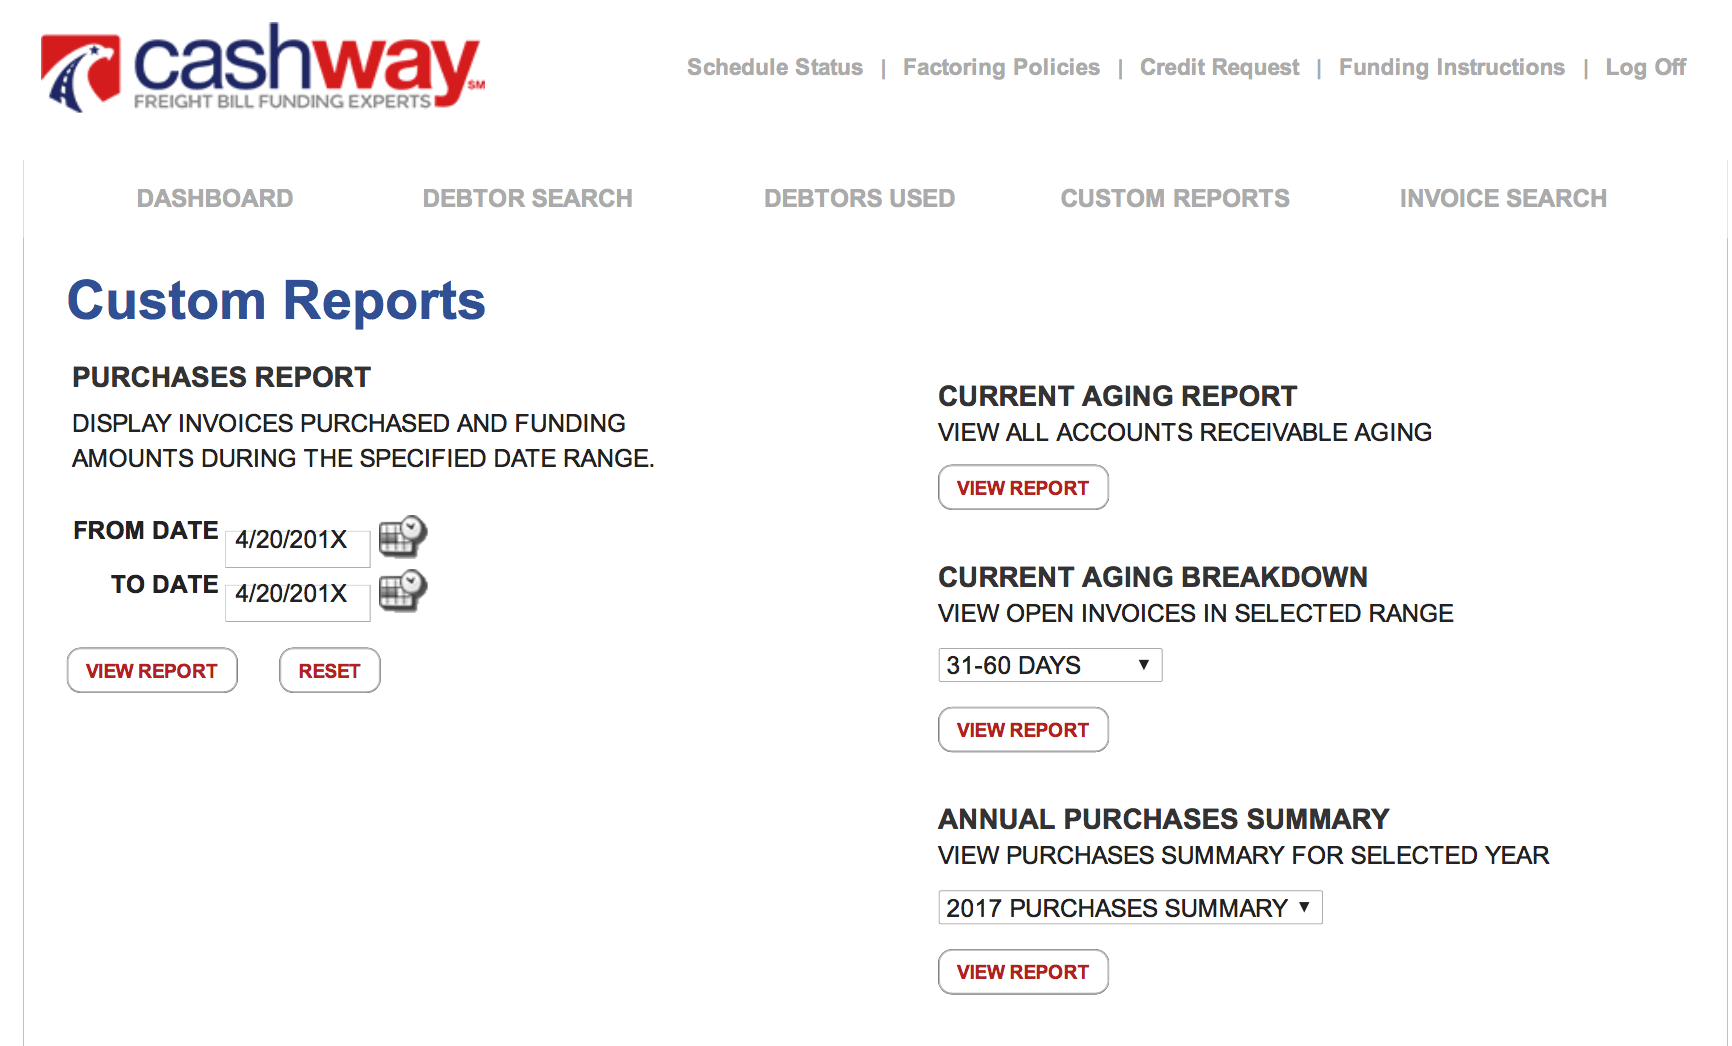 Cashway Online Factoring Account Manager provides detailed custom factoring reports for free